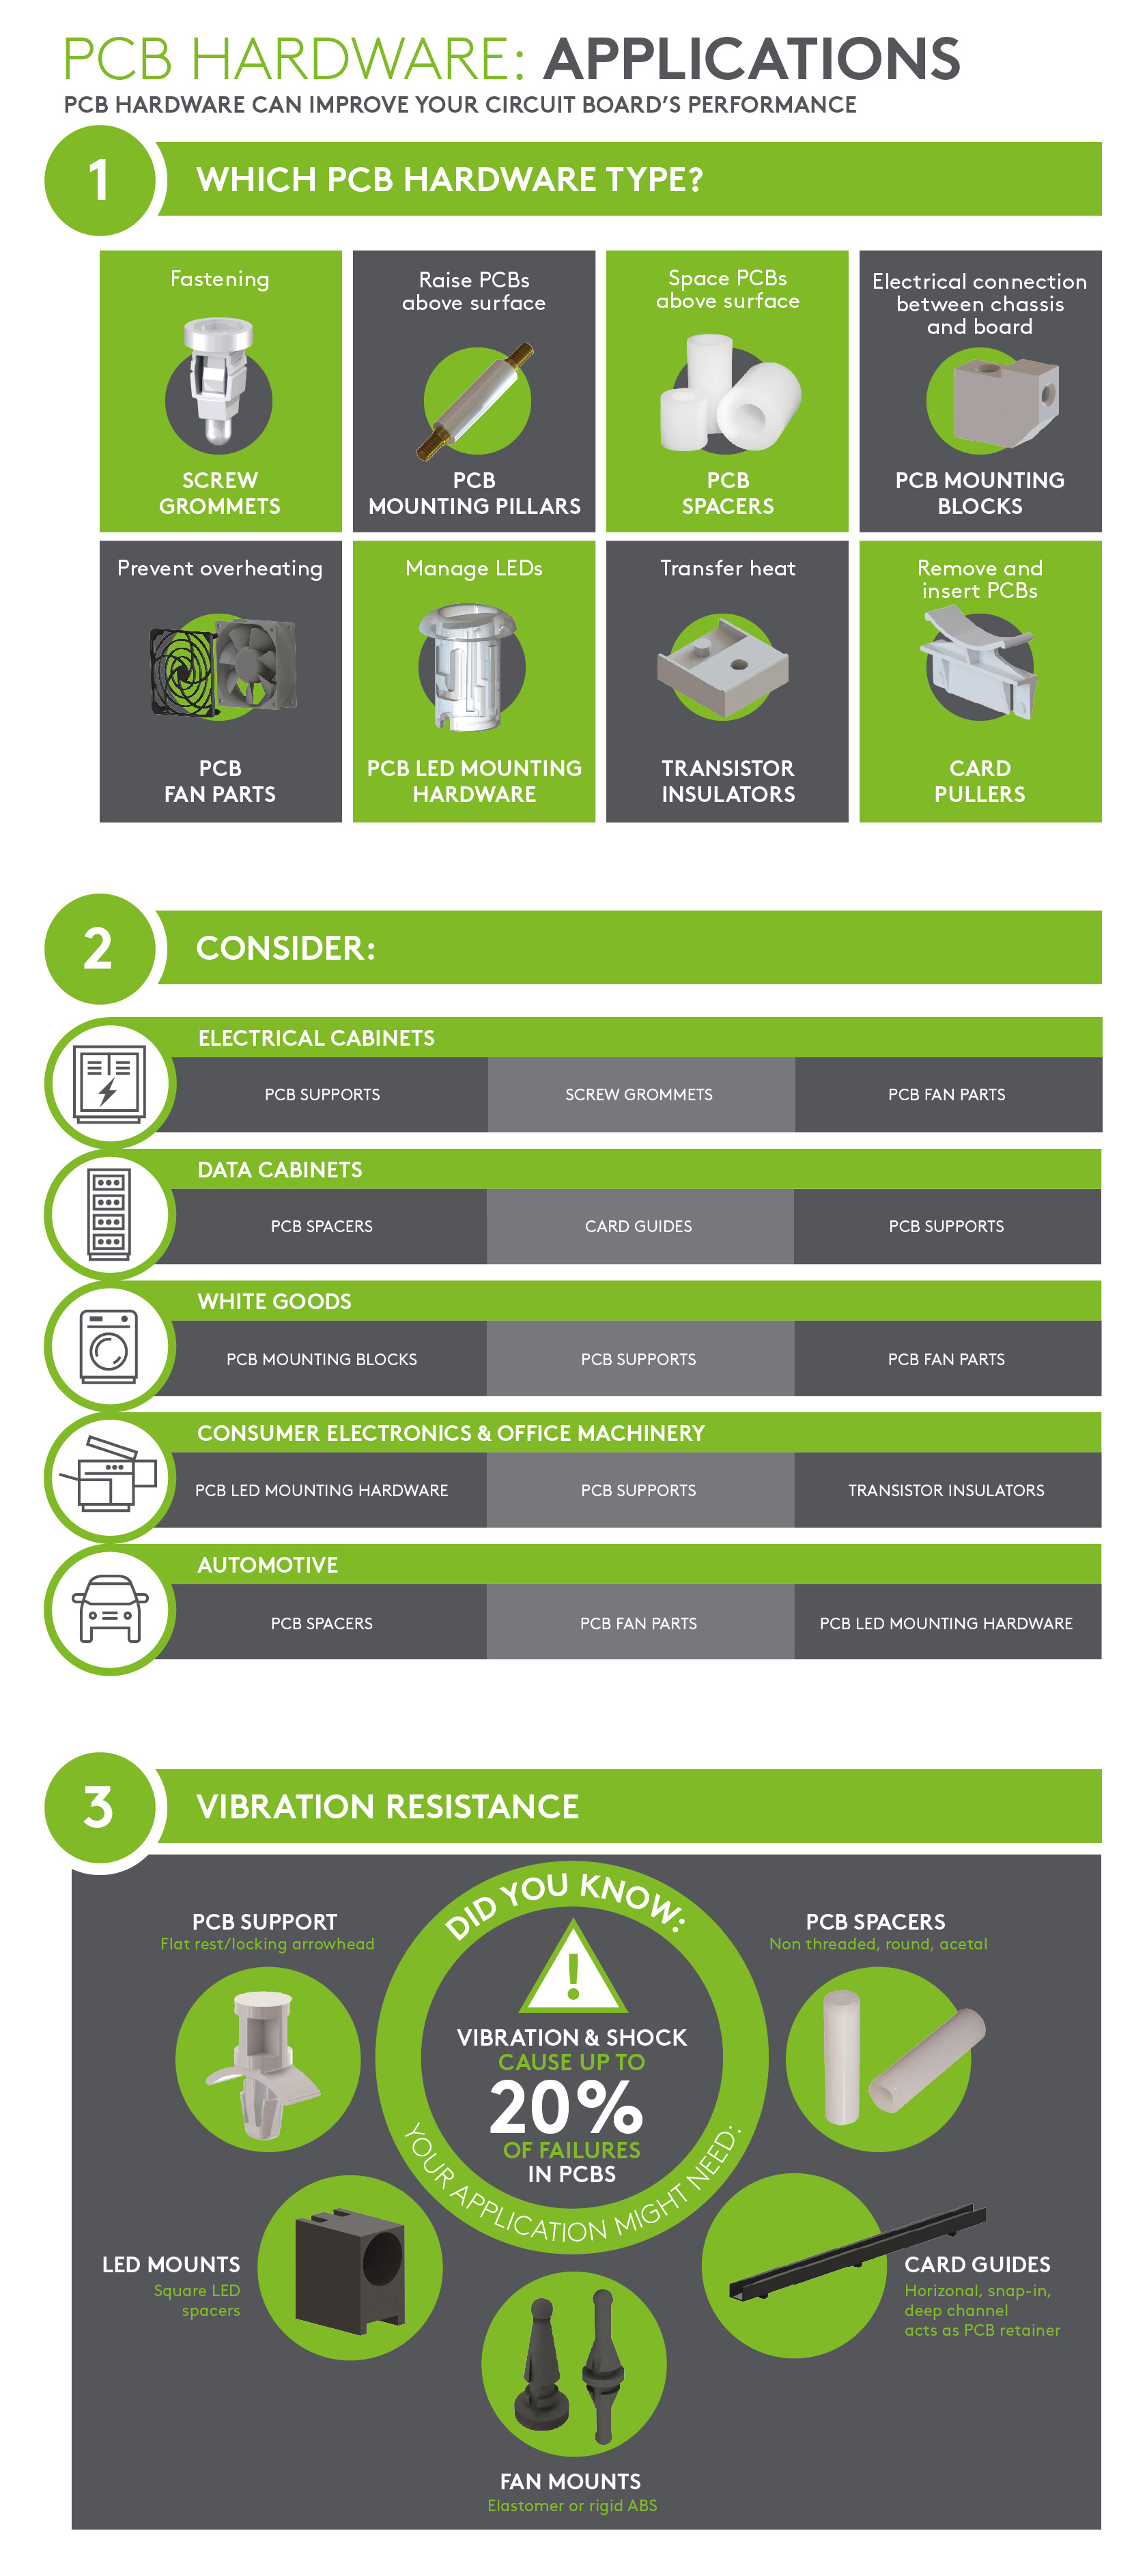 PCB hardware - Applications Infographic